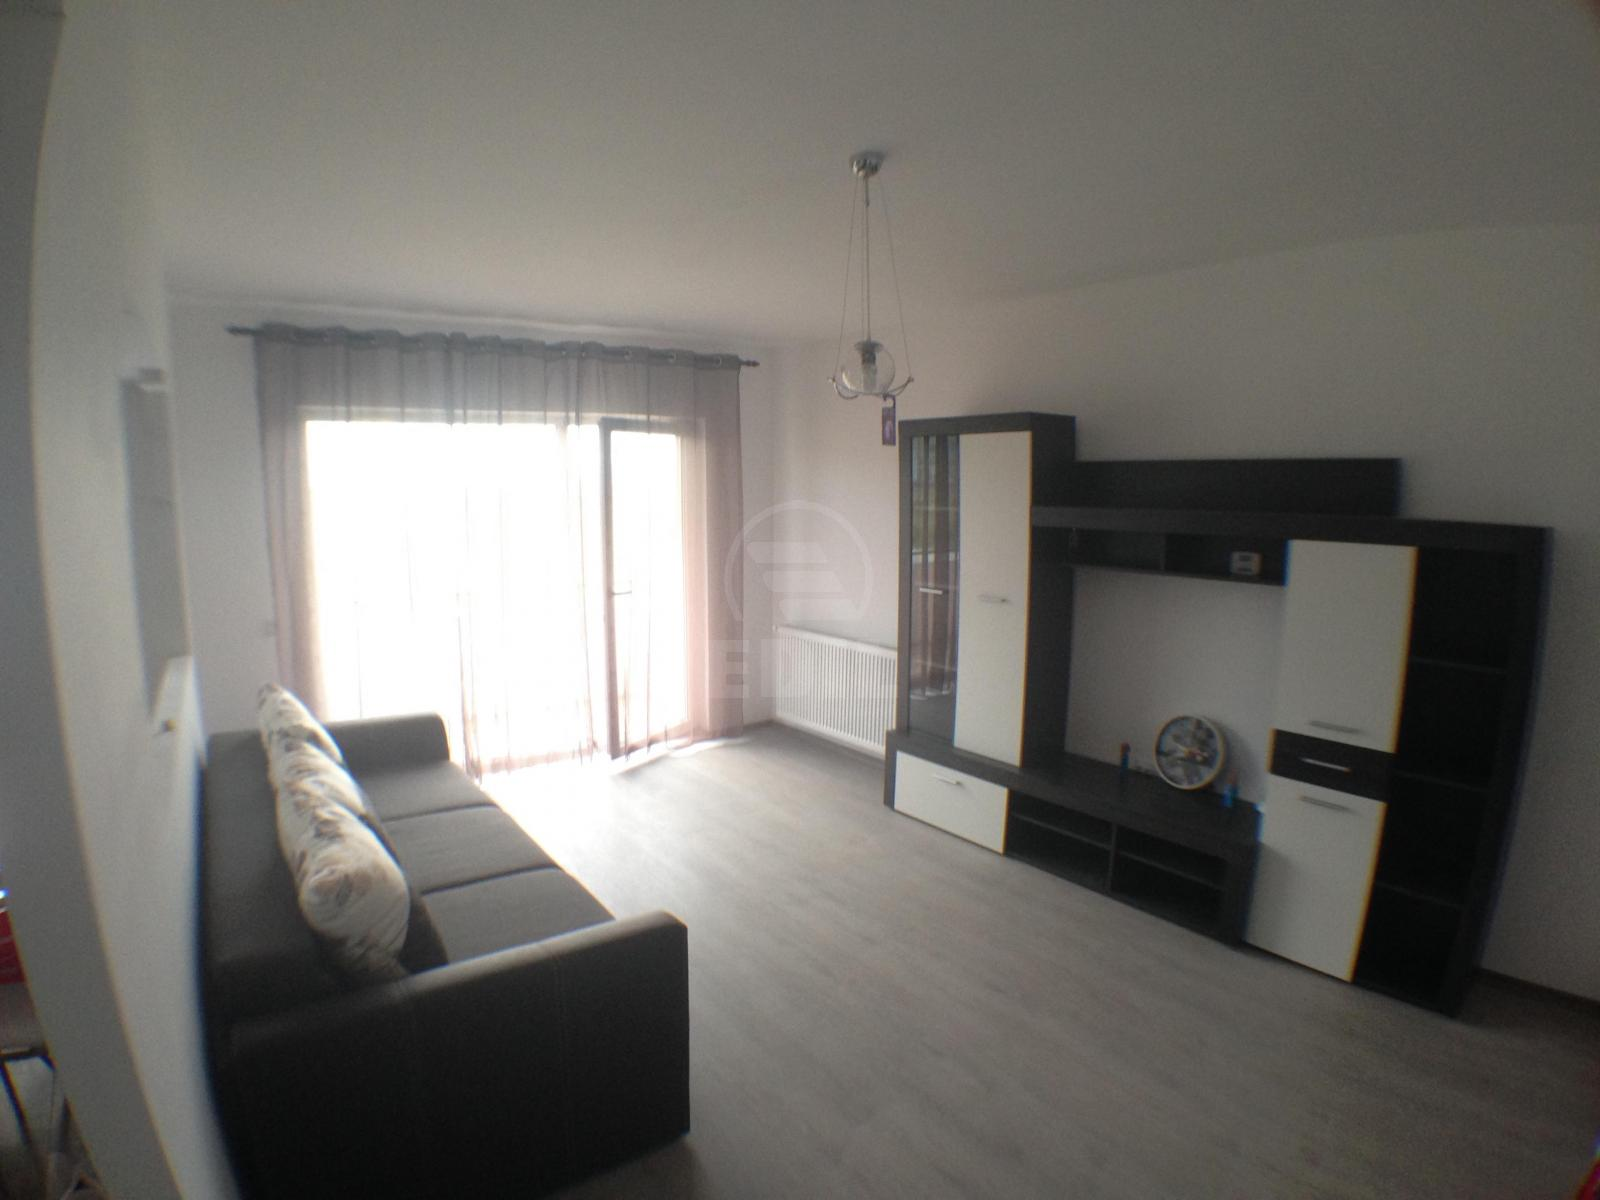 Apartment for rent 2 rooms, APCJ232550FLO-1